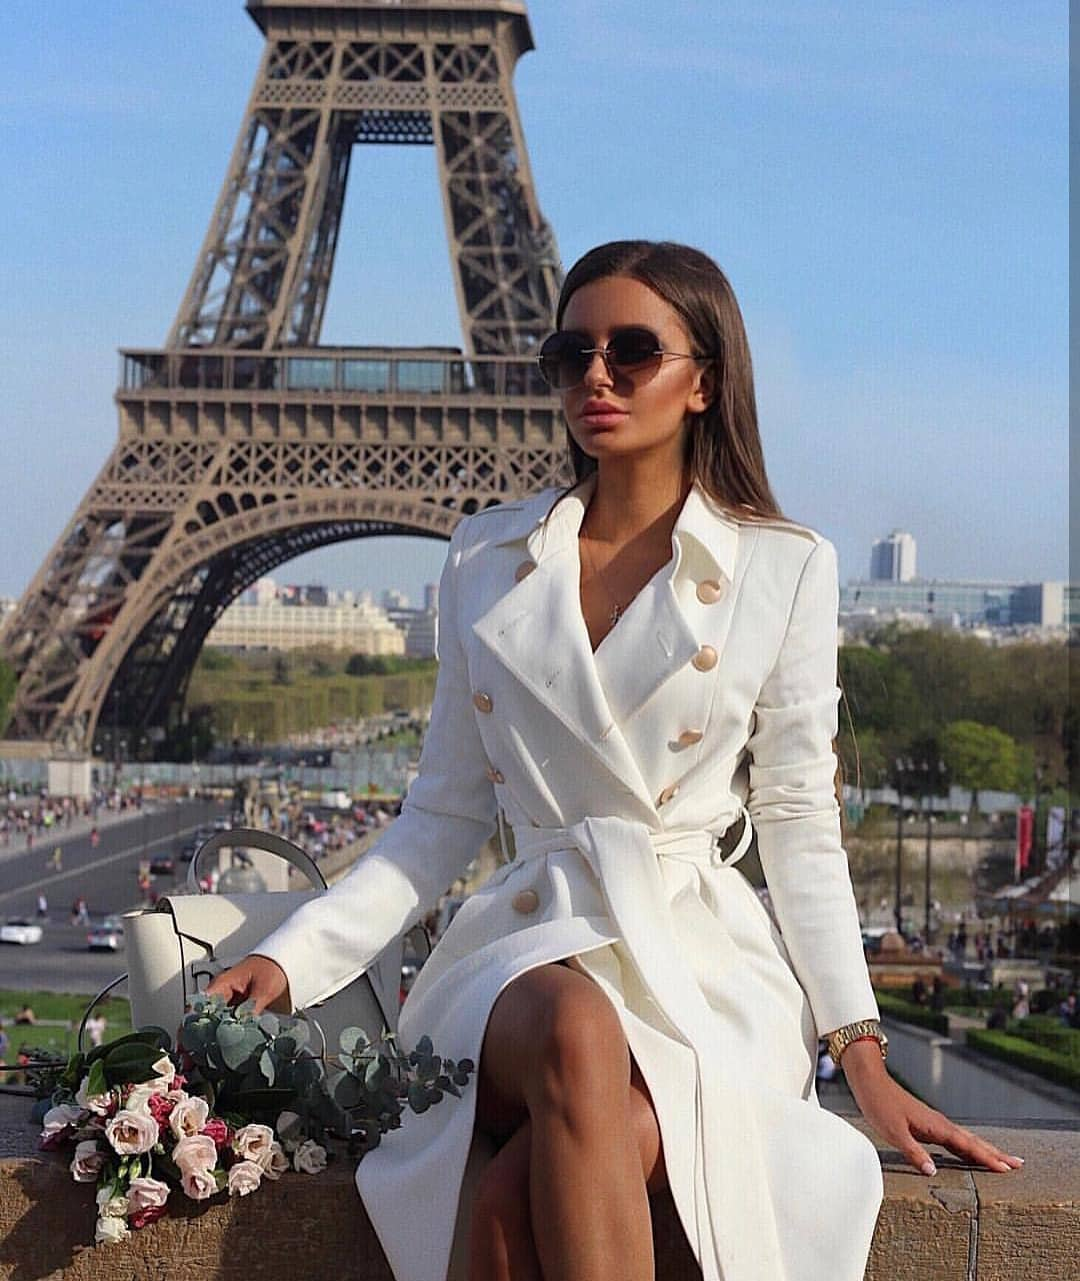 Belted Trench Coat With Gold Buttons In White For Spring In Paris 2019